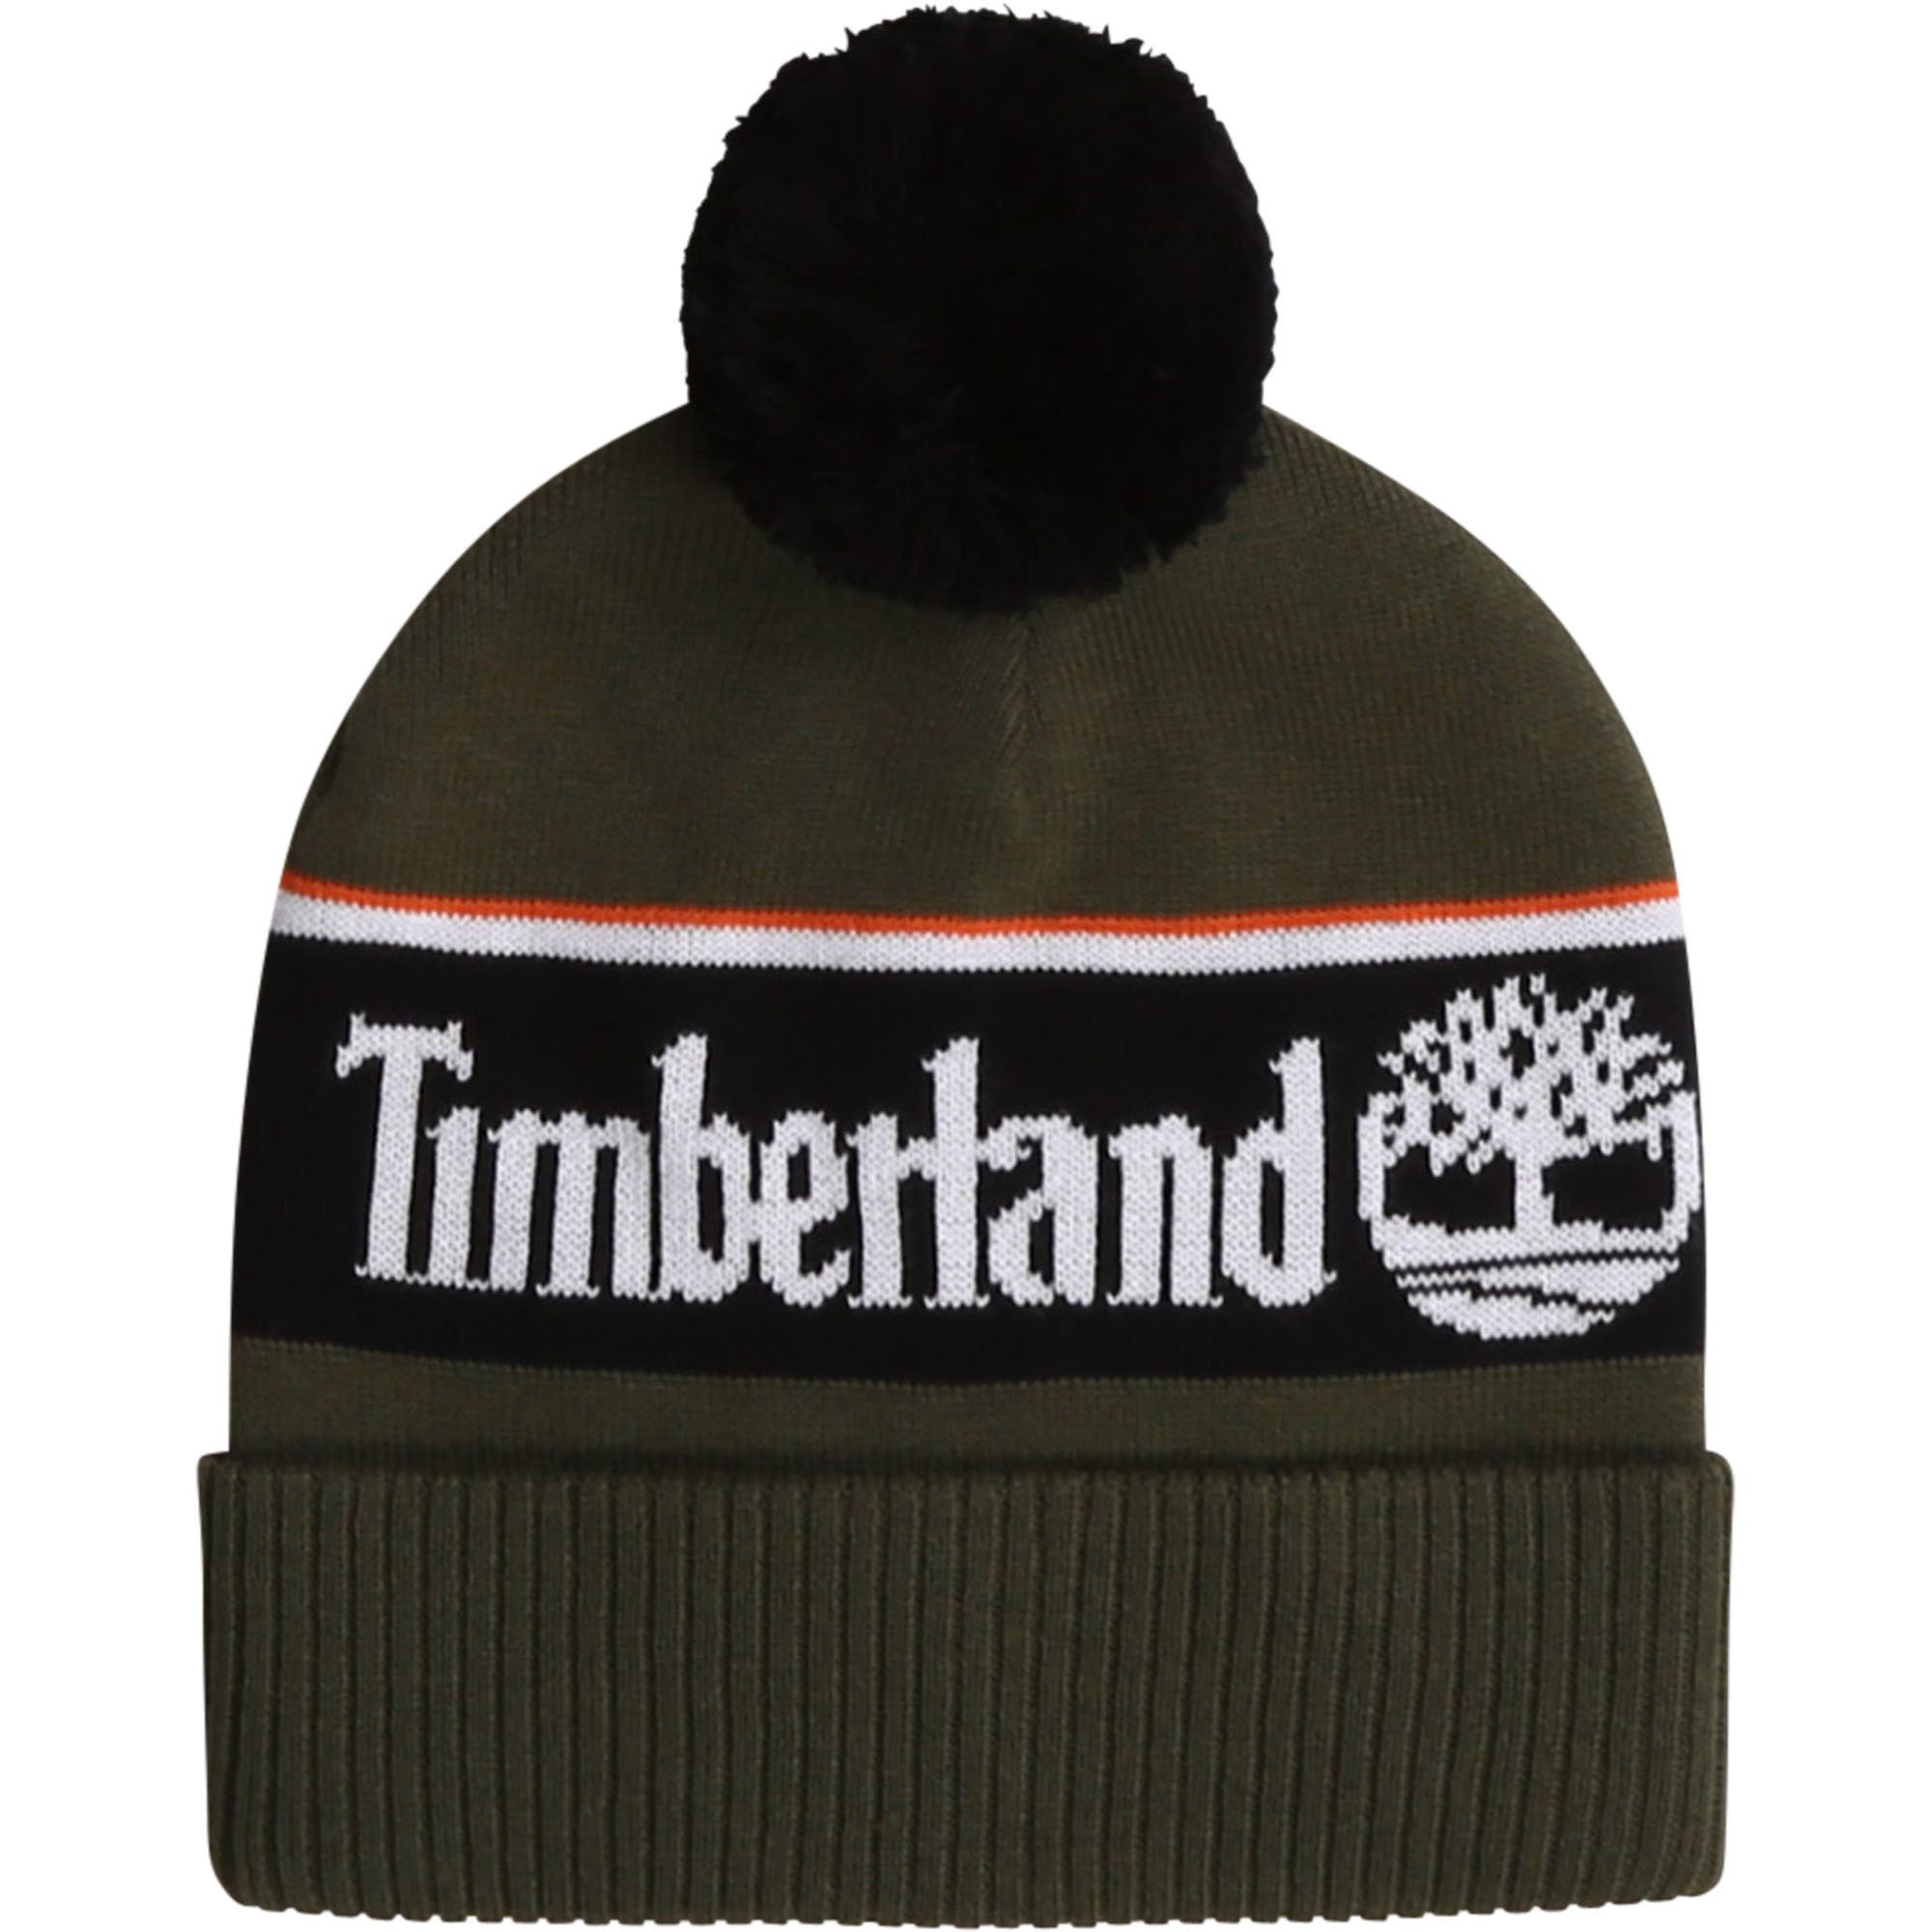 TIMBERLAND PULL ON HAT KHAKI